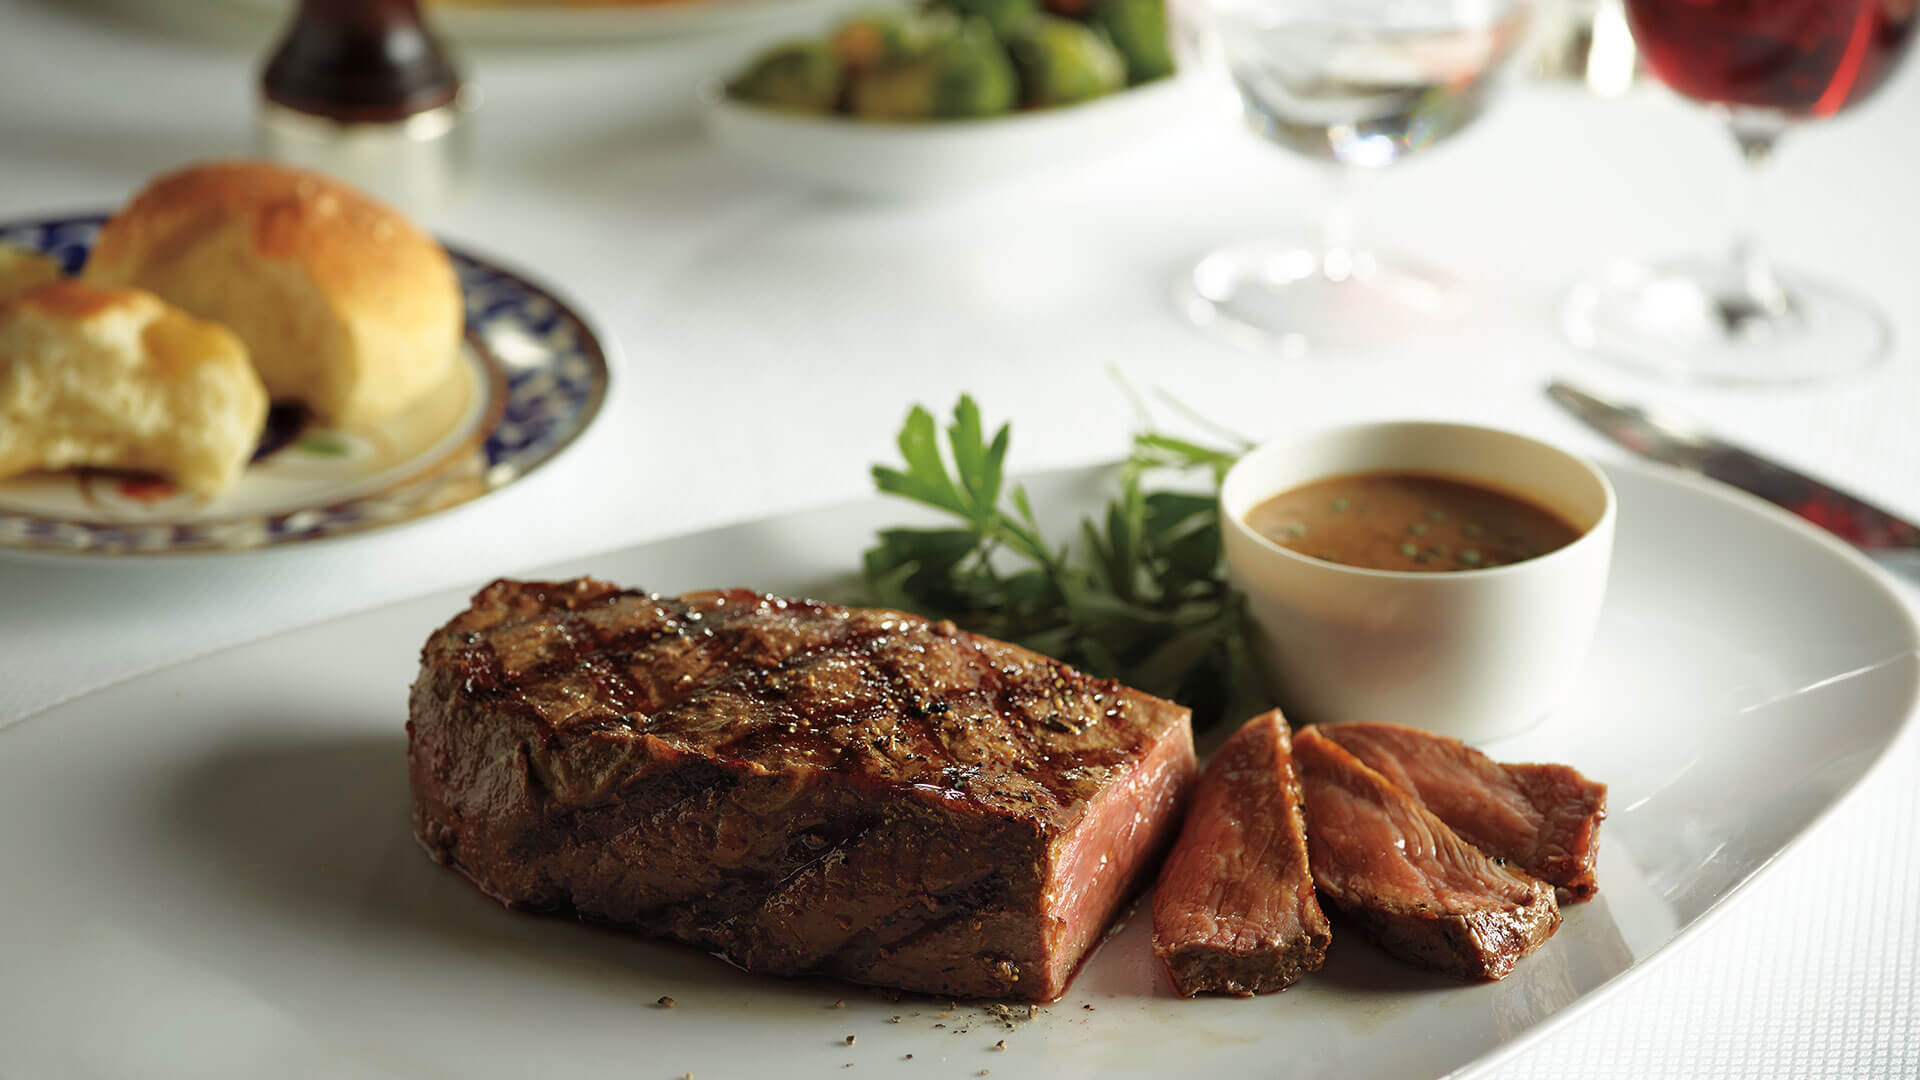 Holland America Koningsdam Dining Culinary_KB14_Pinnacle_New_York_Strip_Steak_48612_alt_1920x1080.jpg